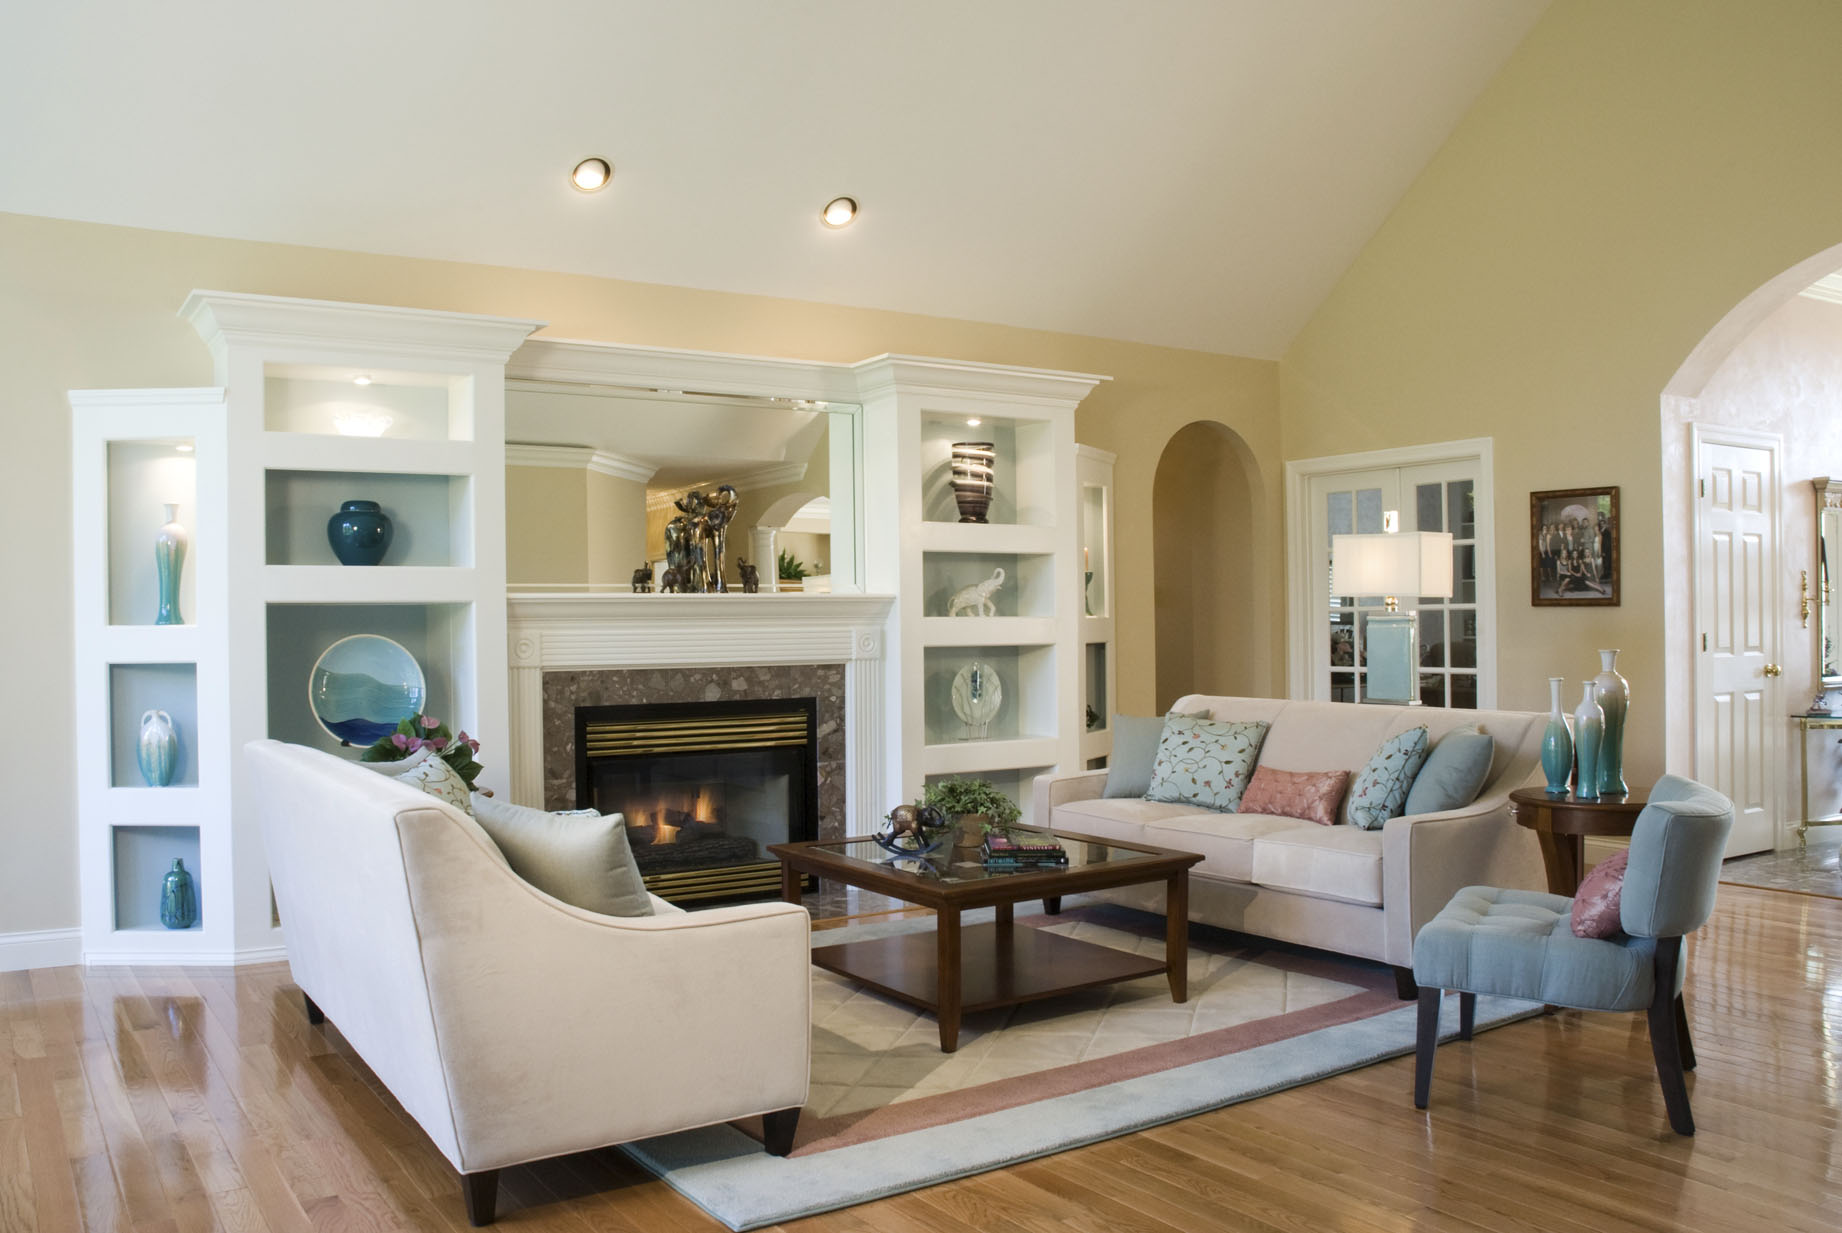 Choosing Wall Color For Small Rooms With Tall Ceilings